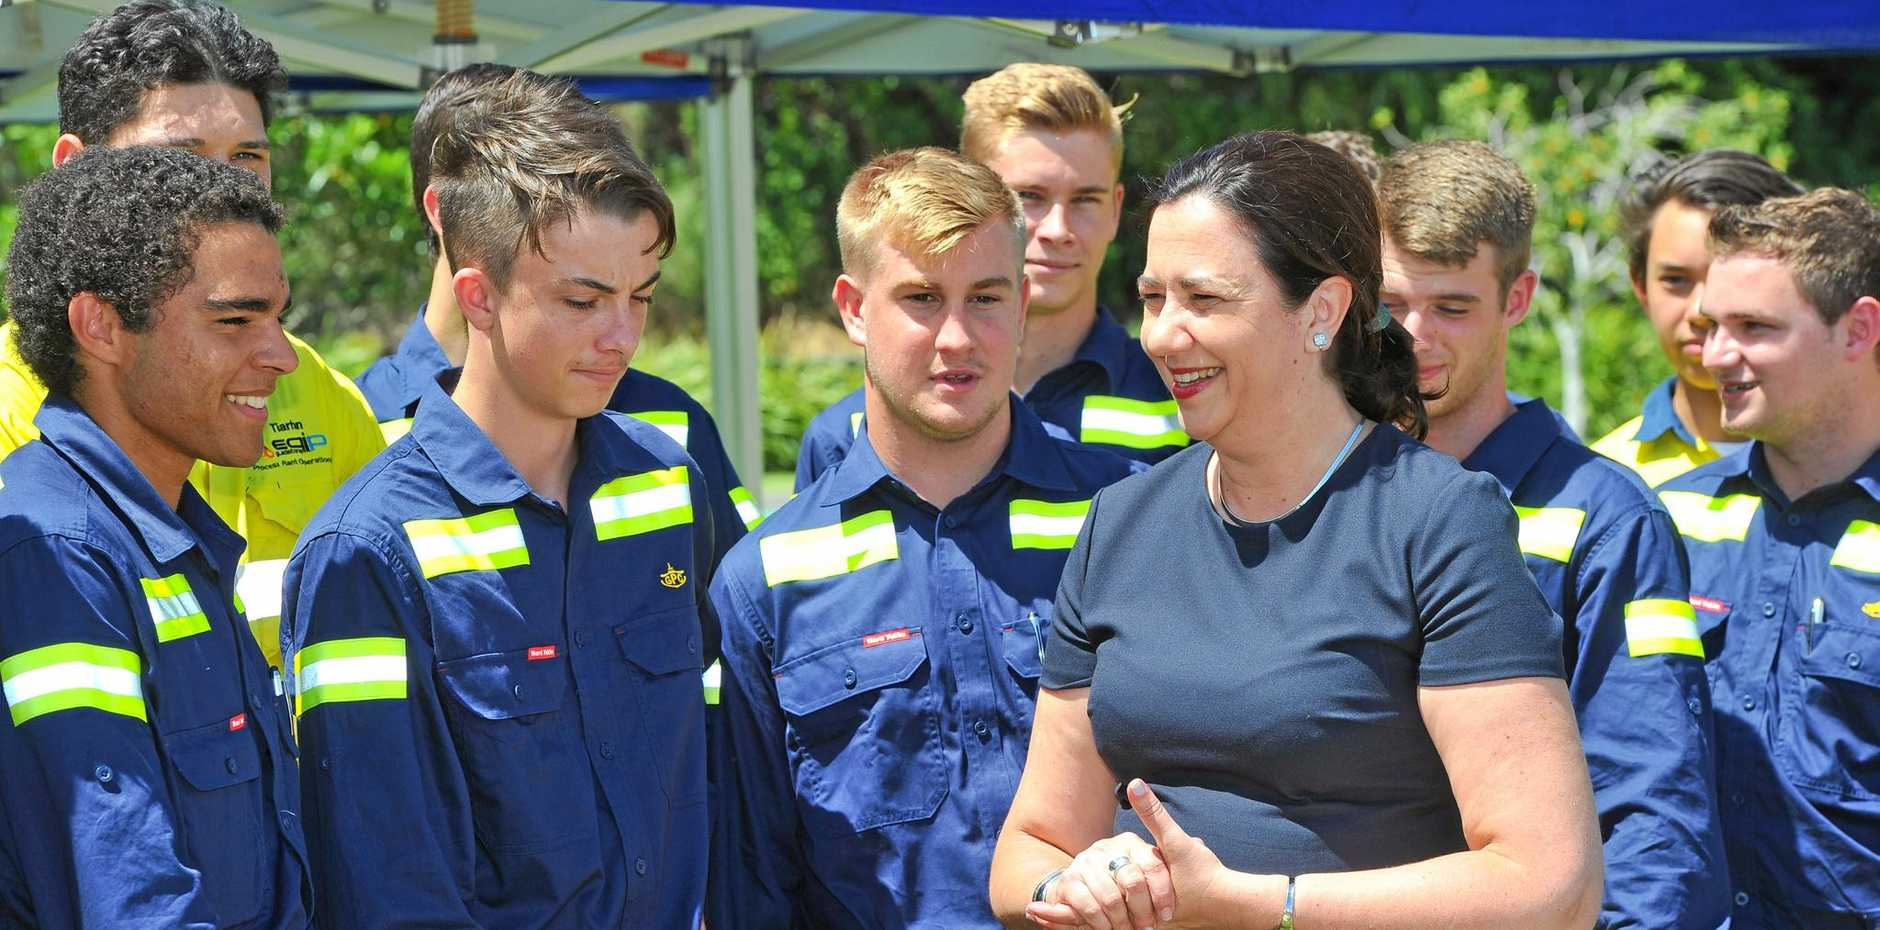 NEW INTAKE: Premier of Queensland Annastacia Palaszczuk met with the Gladstone Ports Corporation's 2017 apprentices earlier this year.